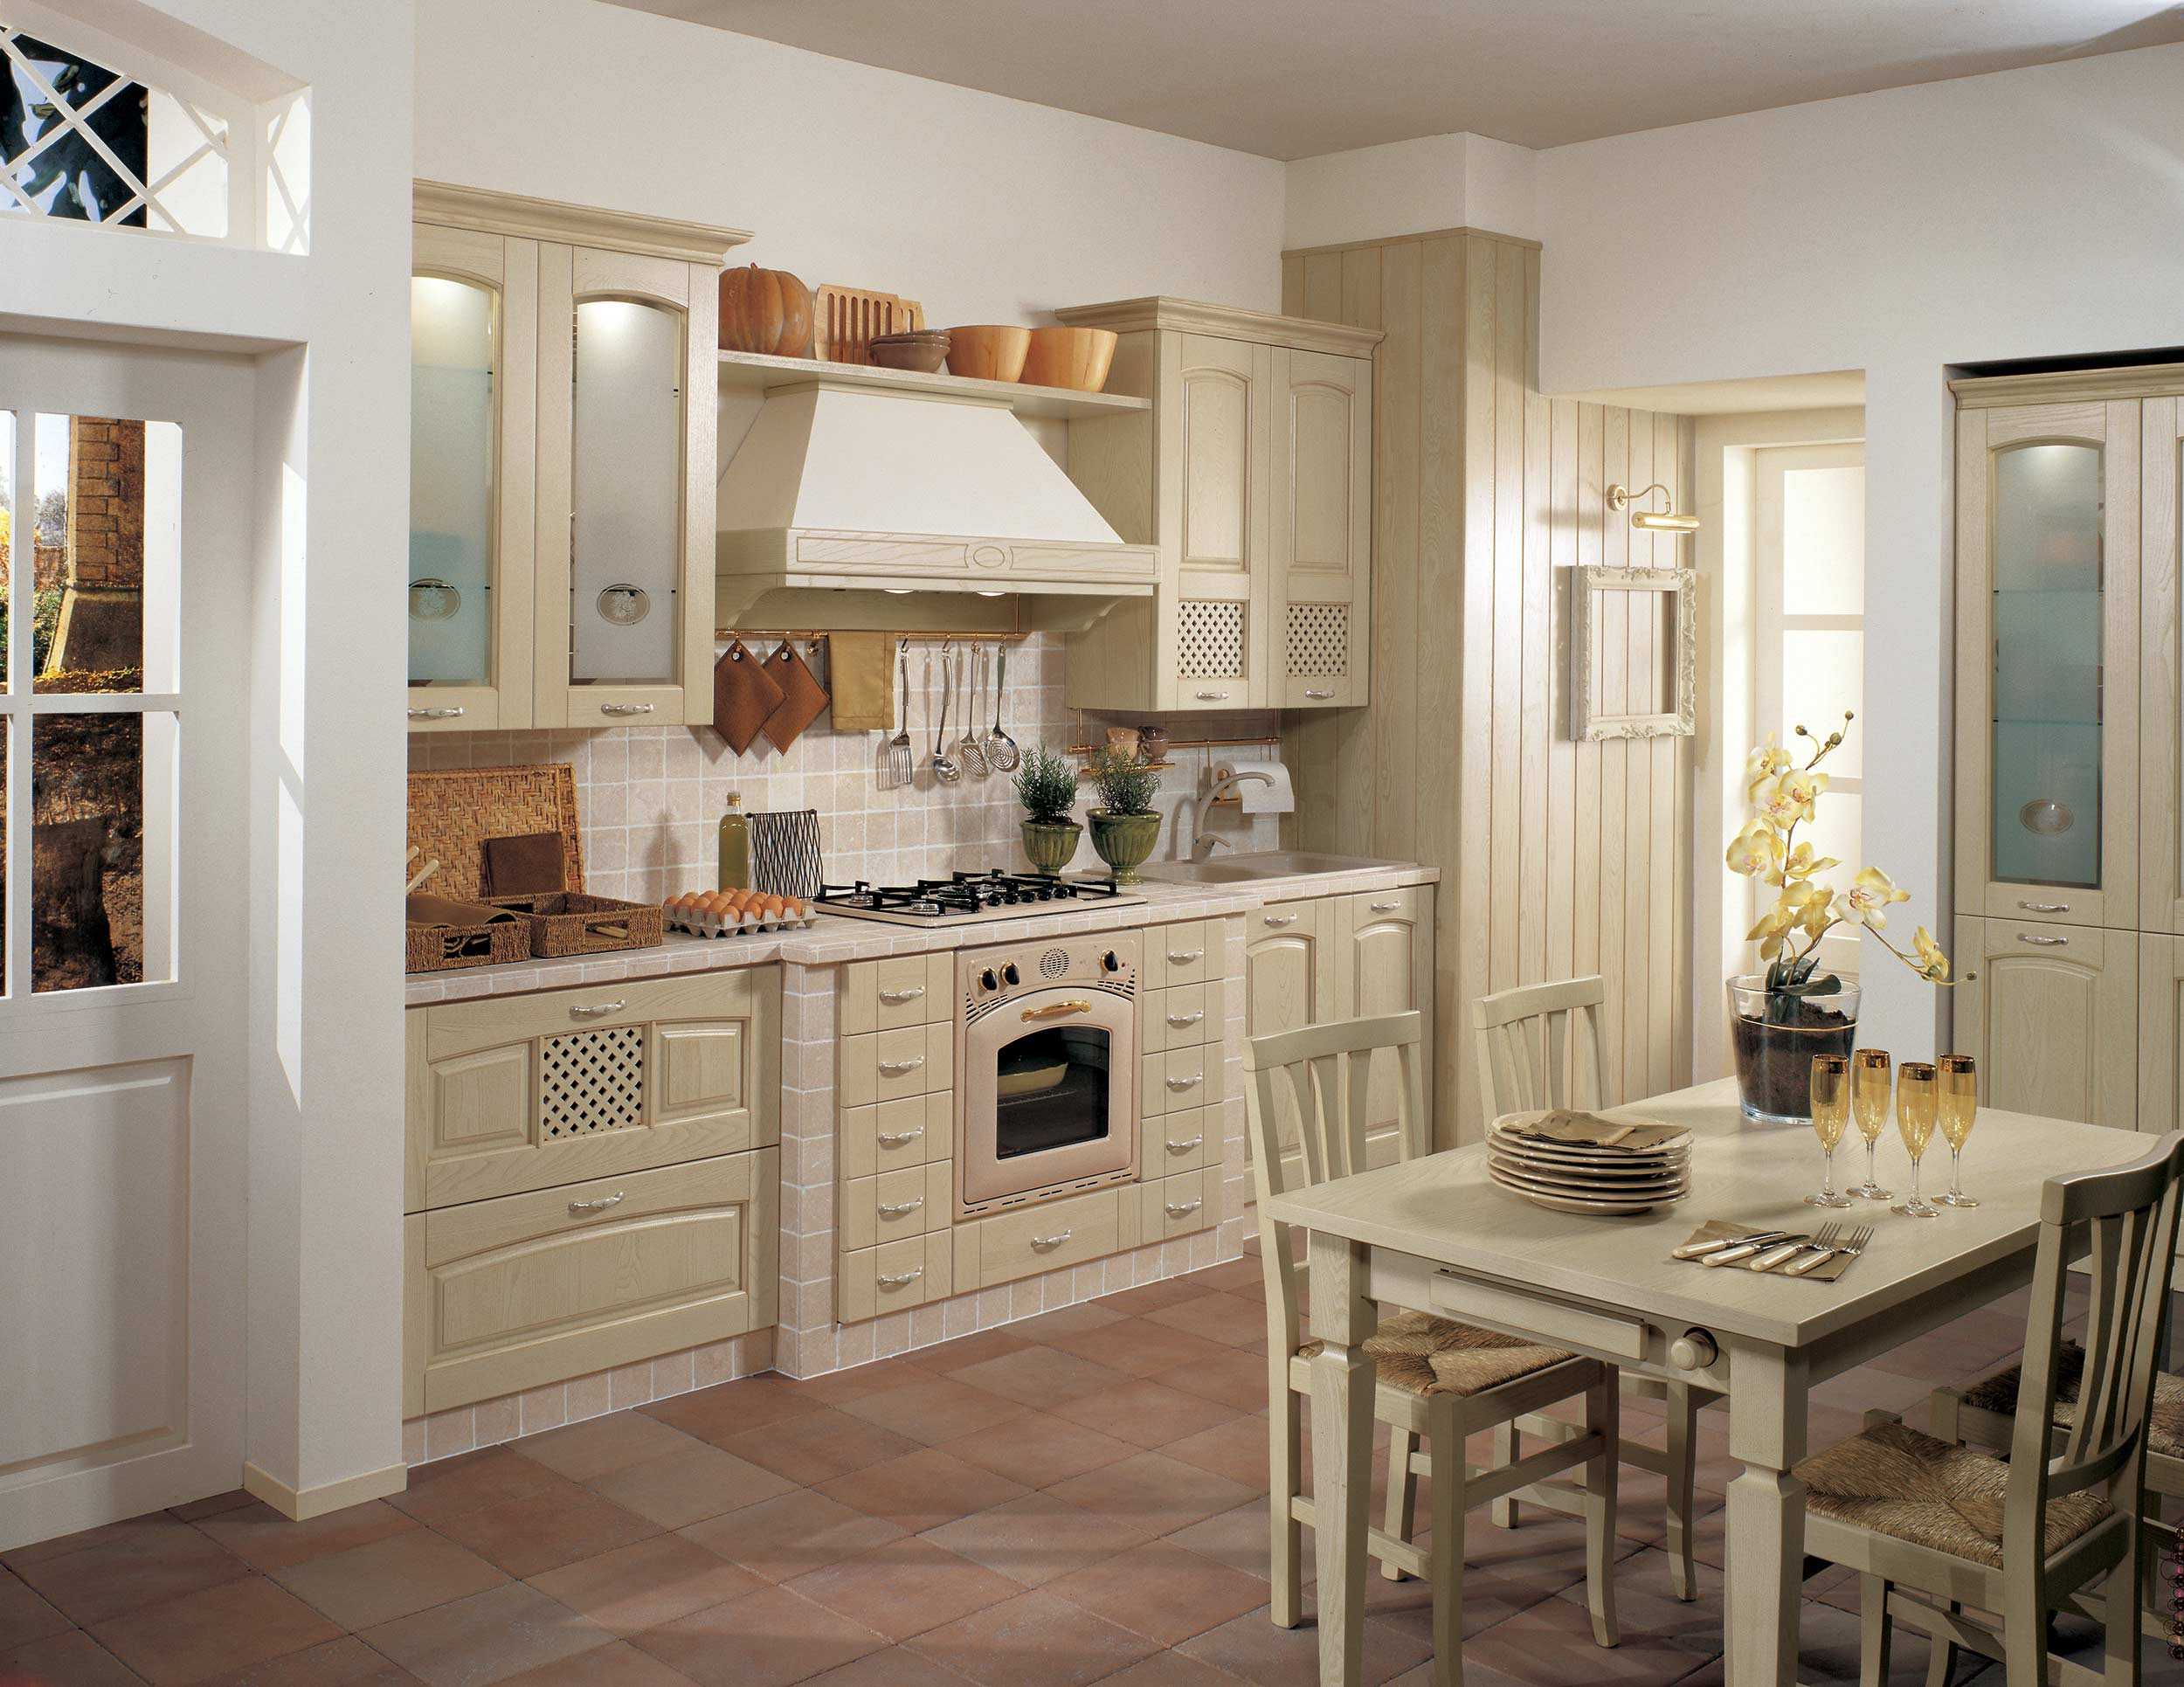 Best Cucine Ikea Classiche Photos - Ideas & Design 2017 ...